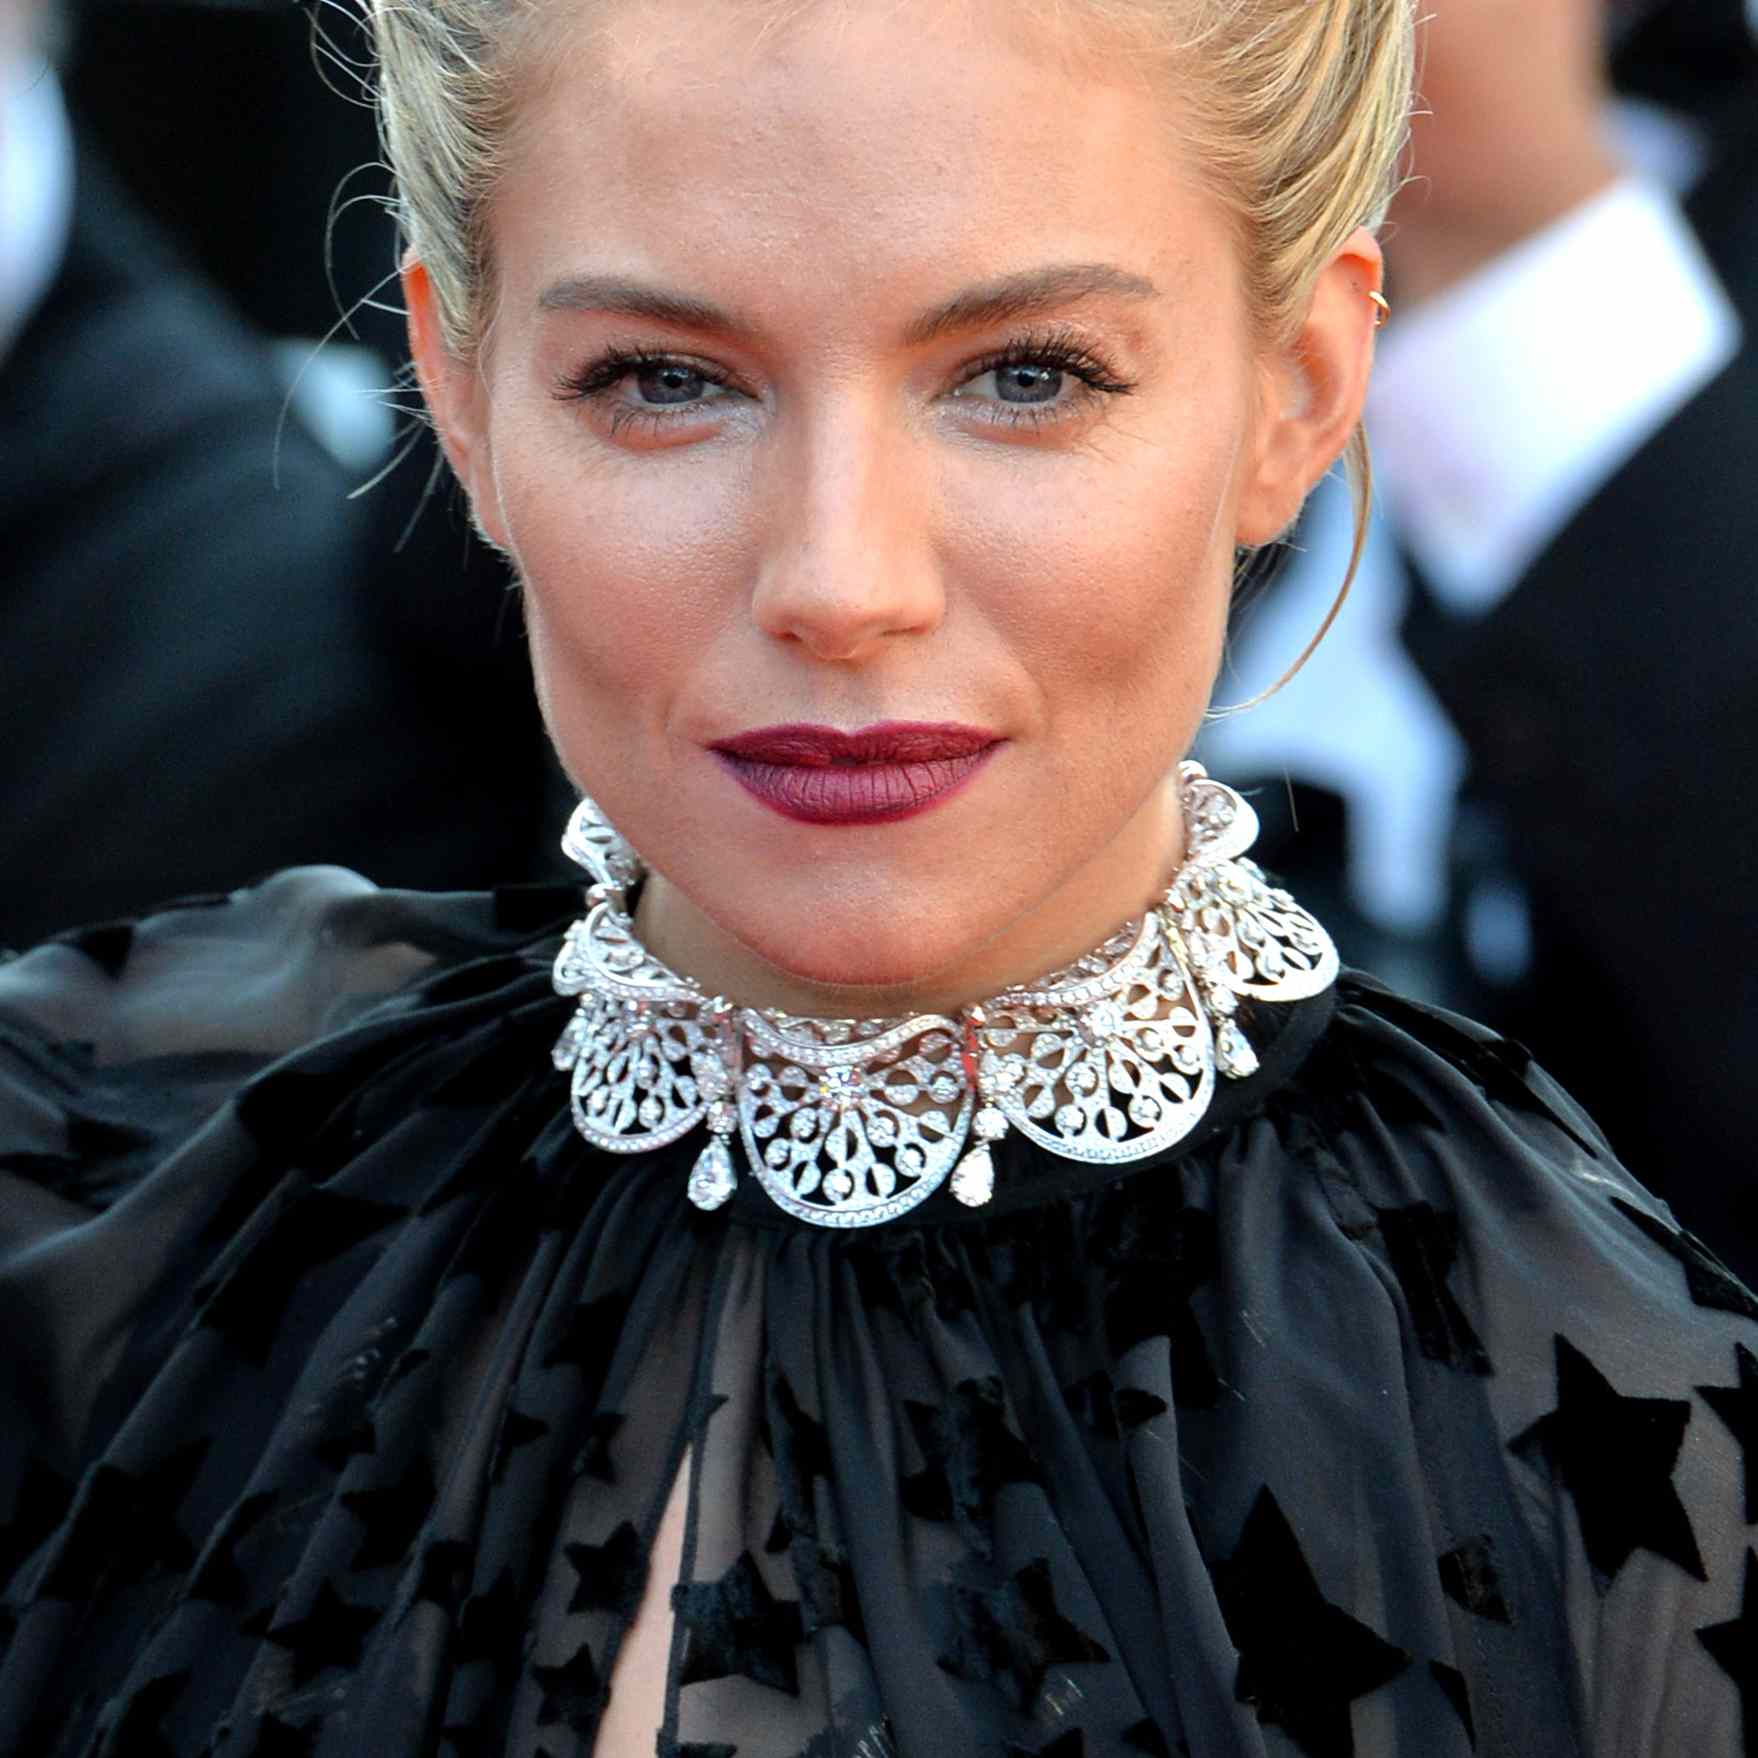 Sienna Miller with a double french-braided updo